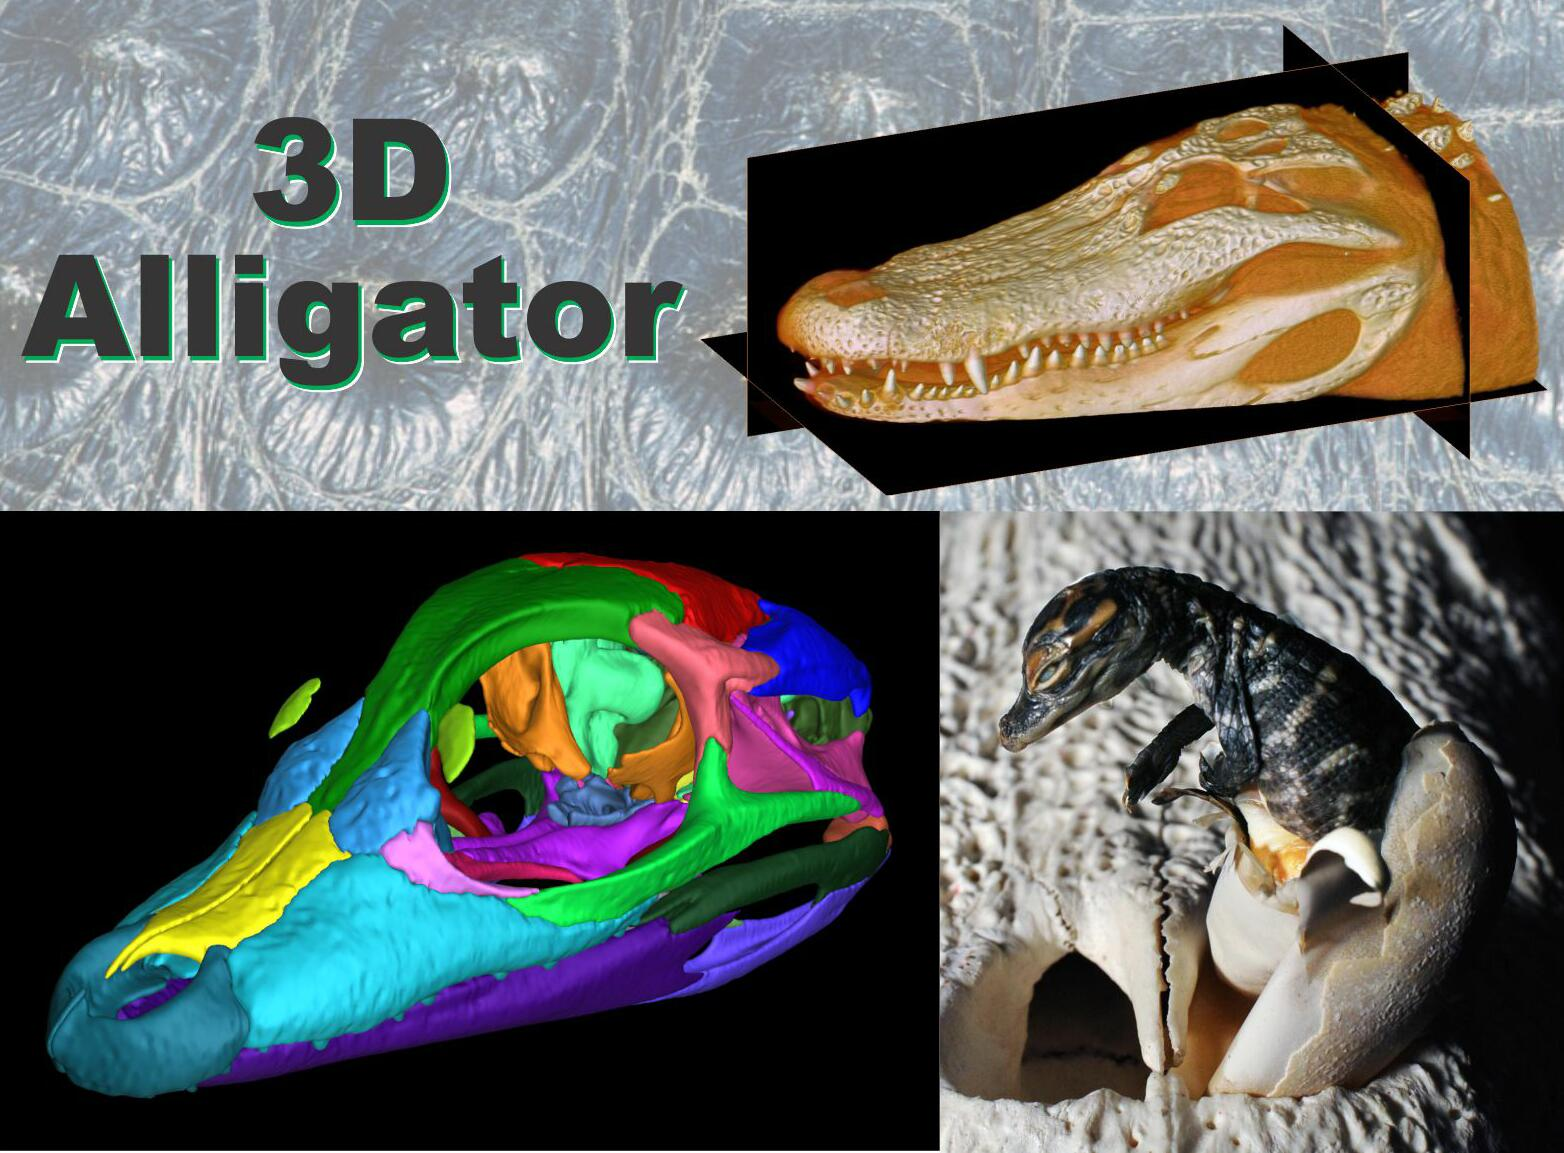 The 3D Alligator: A new anatomical resource for education & research ...